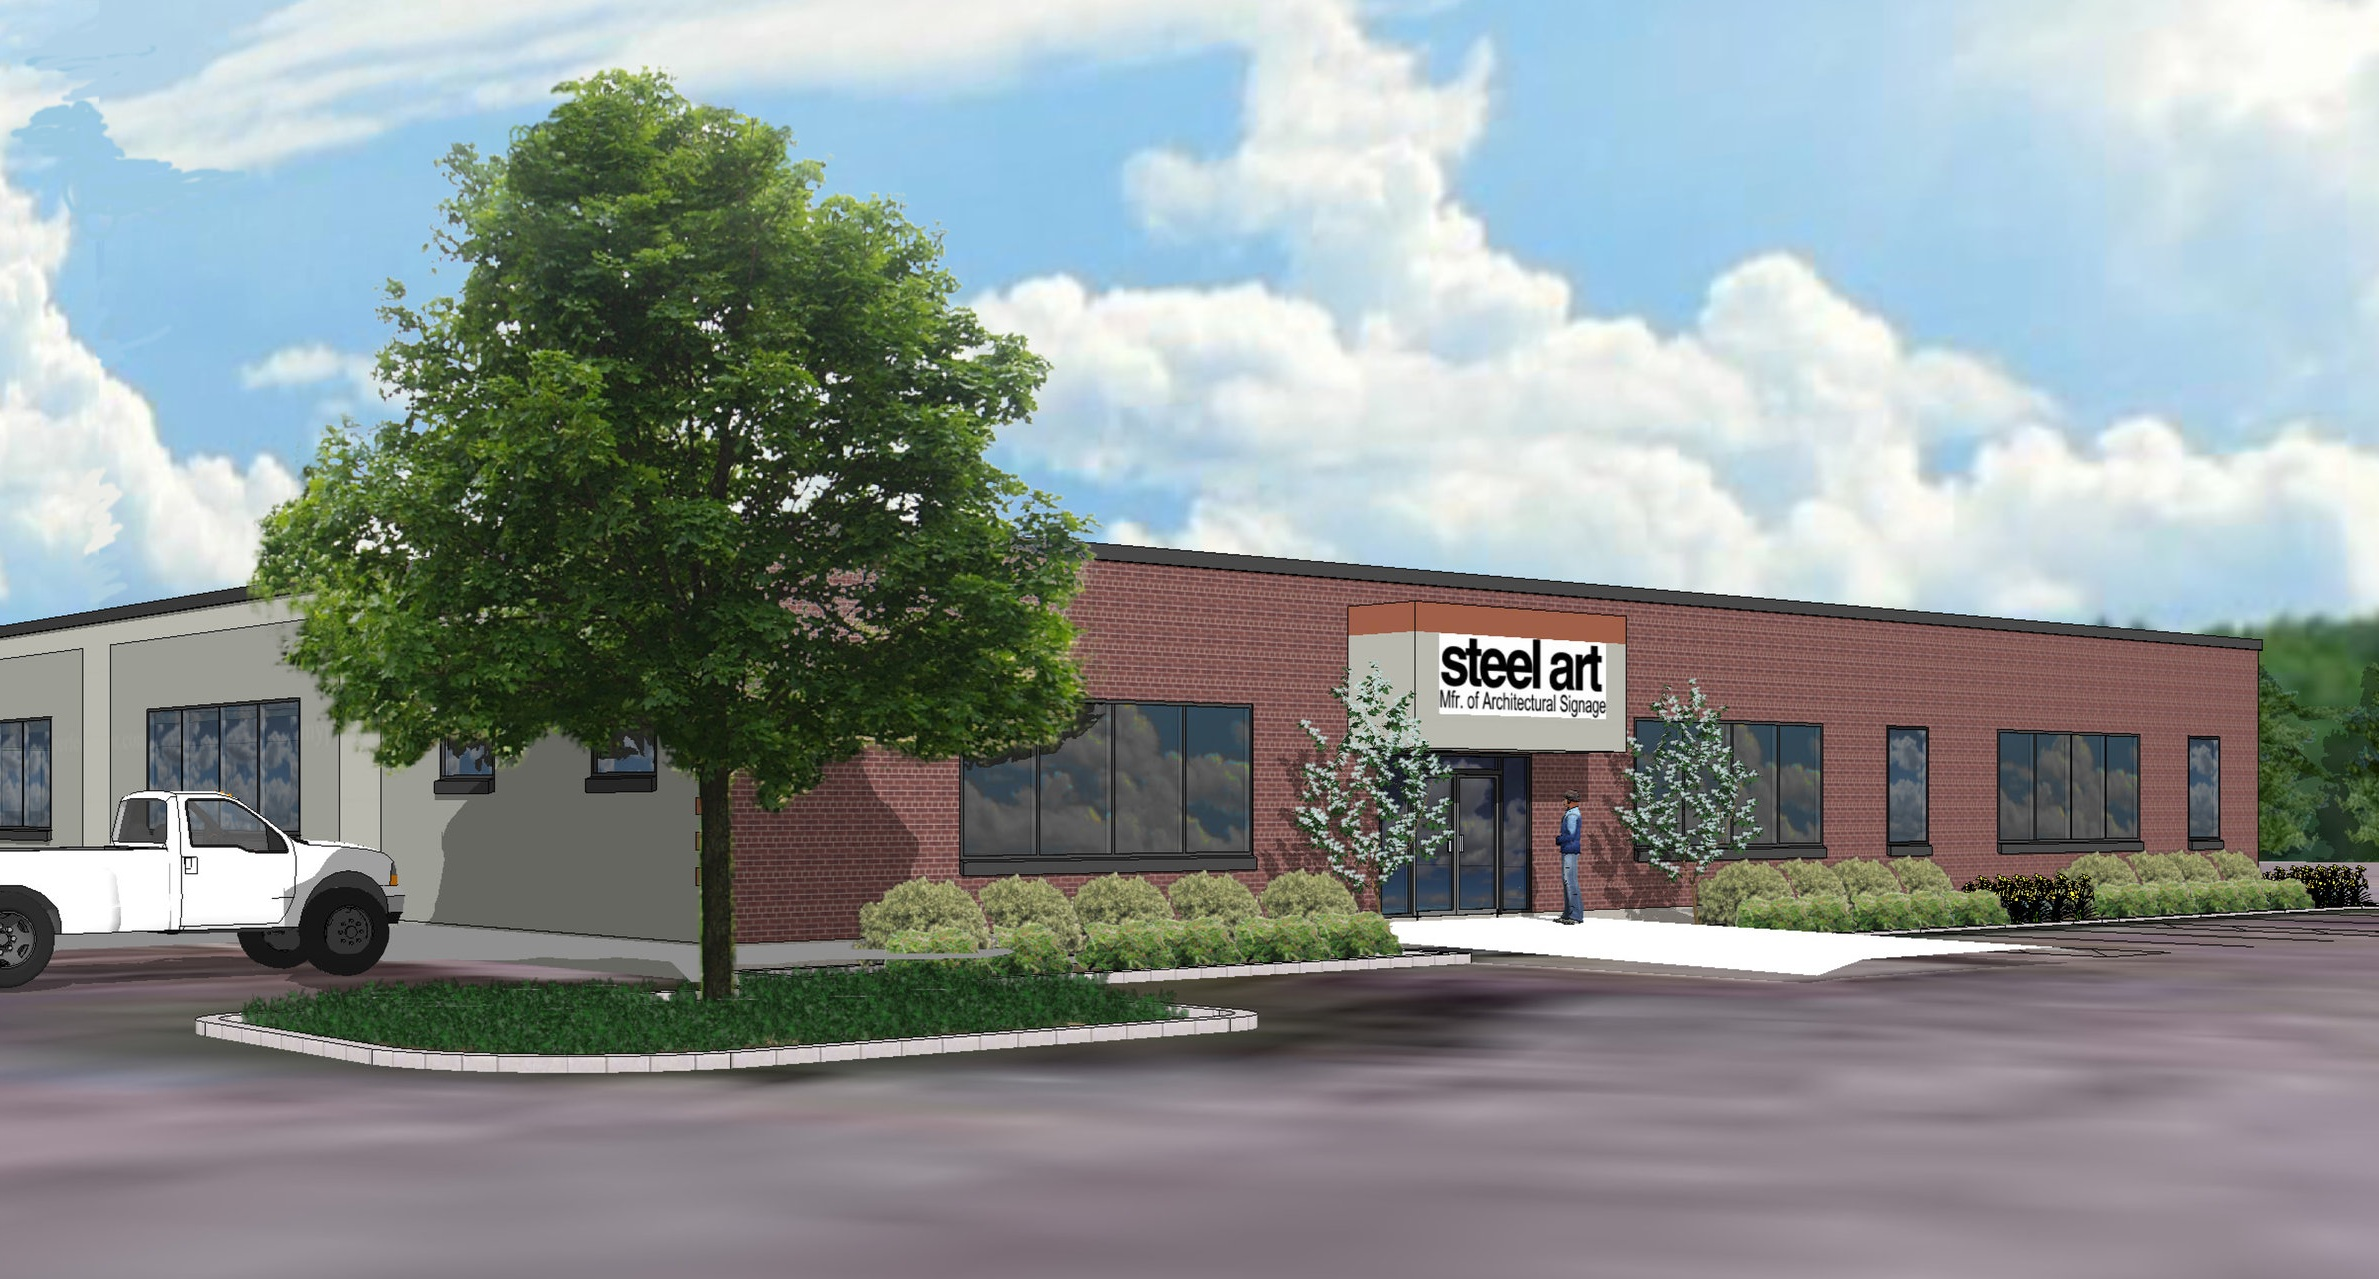 Steel Art's state-of-the-art manufacturing facility in Norwood, Massachusetts